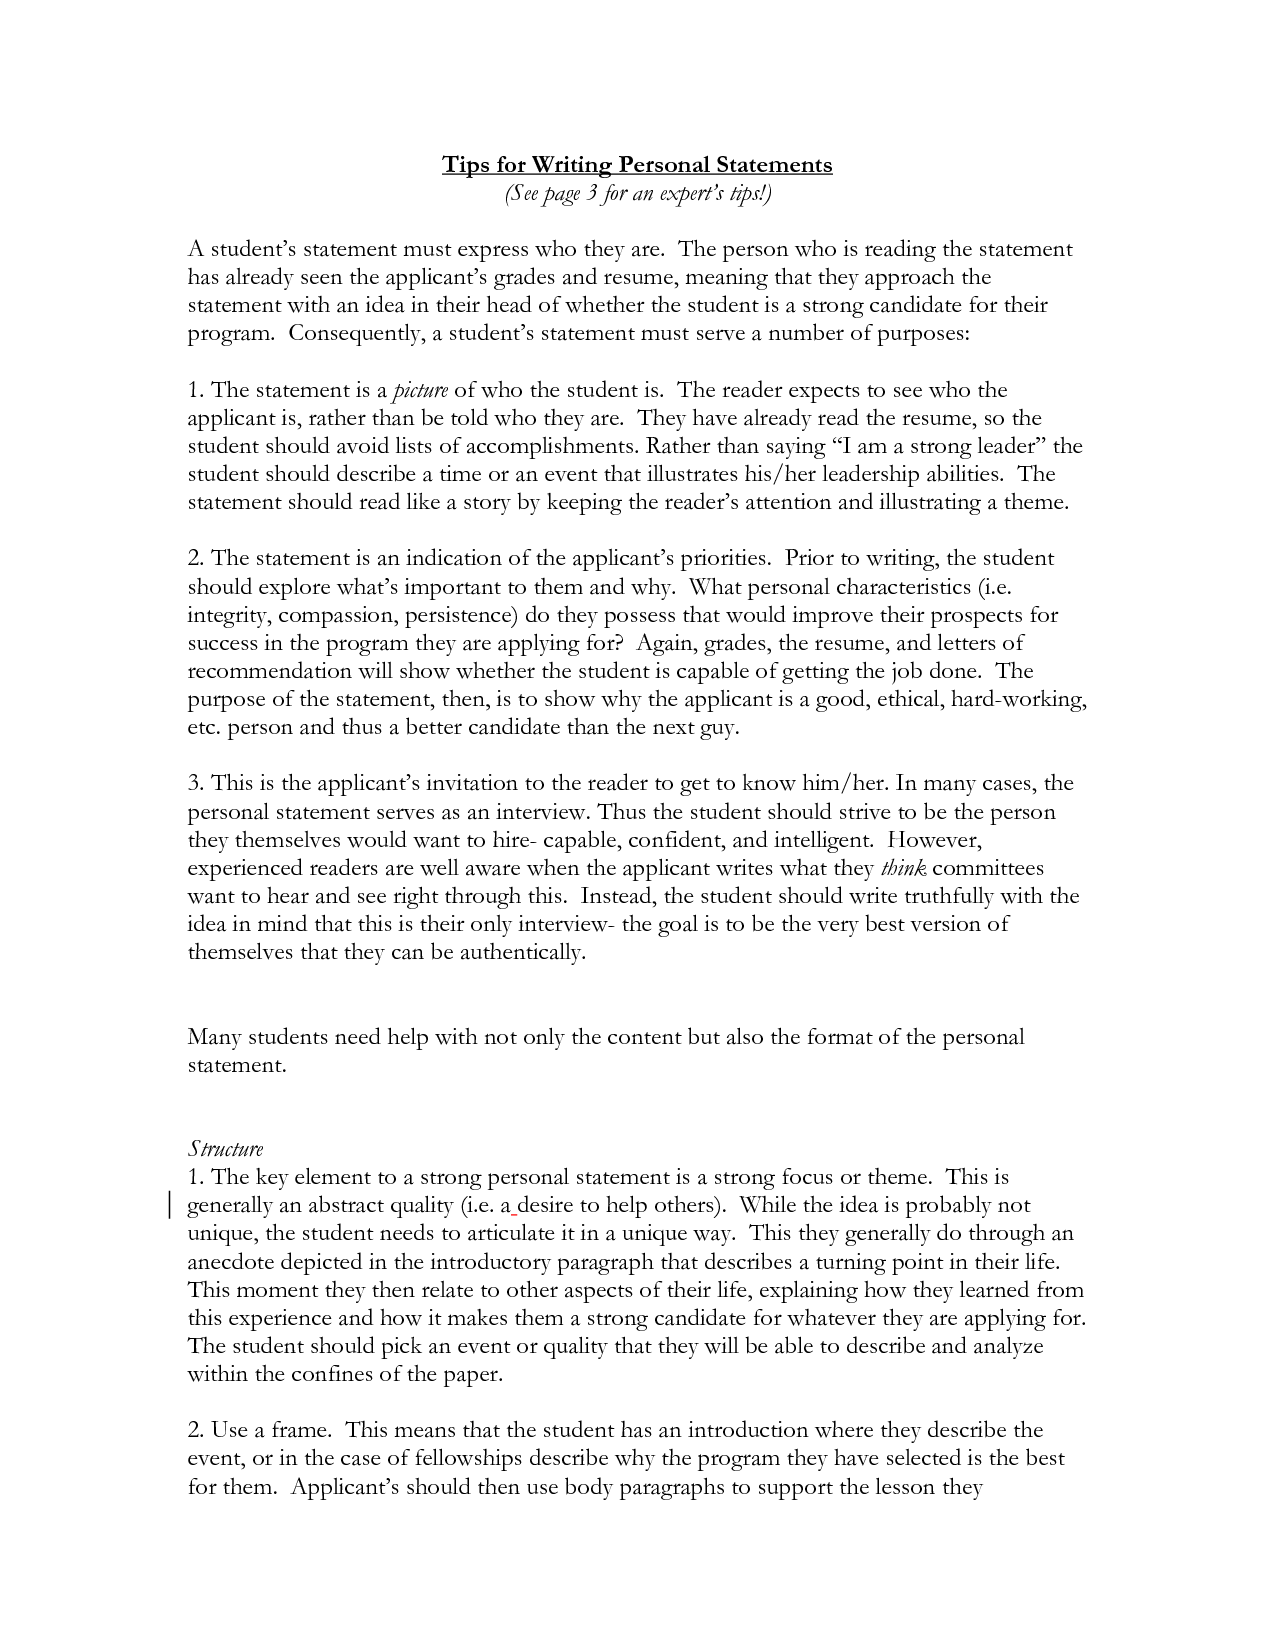 024 Essay Example Study Top Abroad Scholarship Samples Why I Want To Examples Sample Full